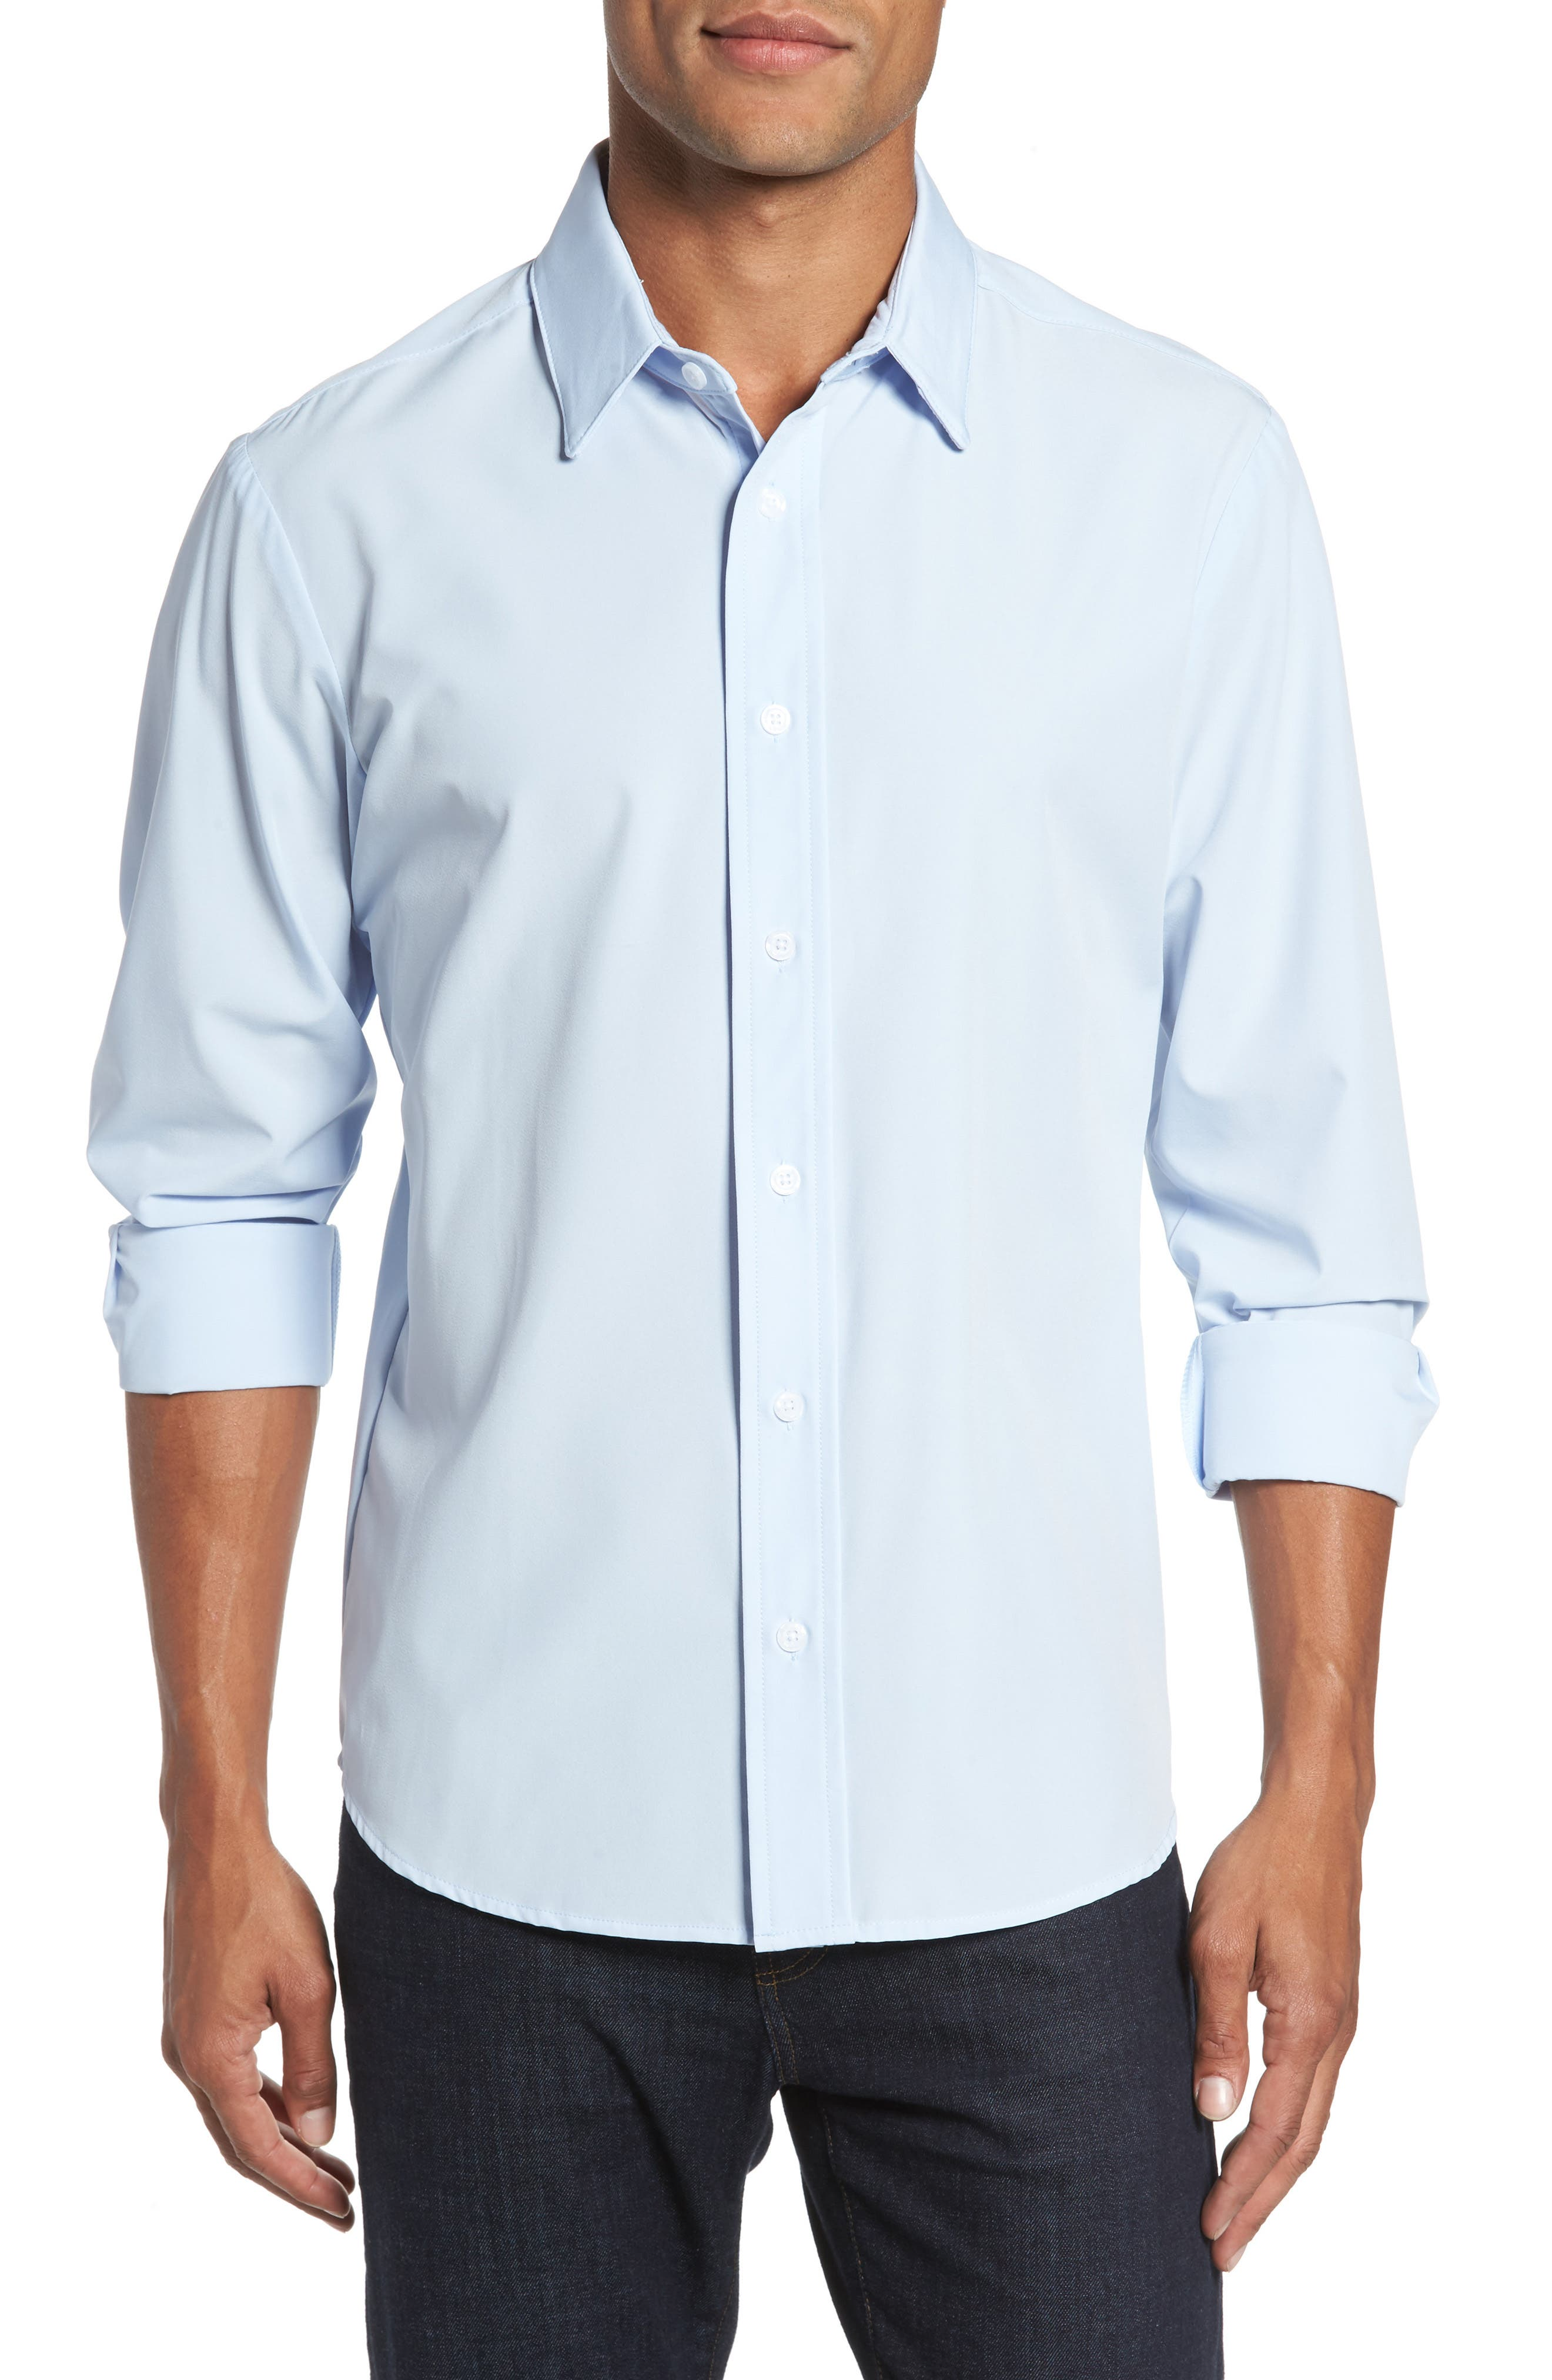 Blue Label Nelson Slim Fit Sport Shirt,                             Main thumbnail 1, color,                             400